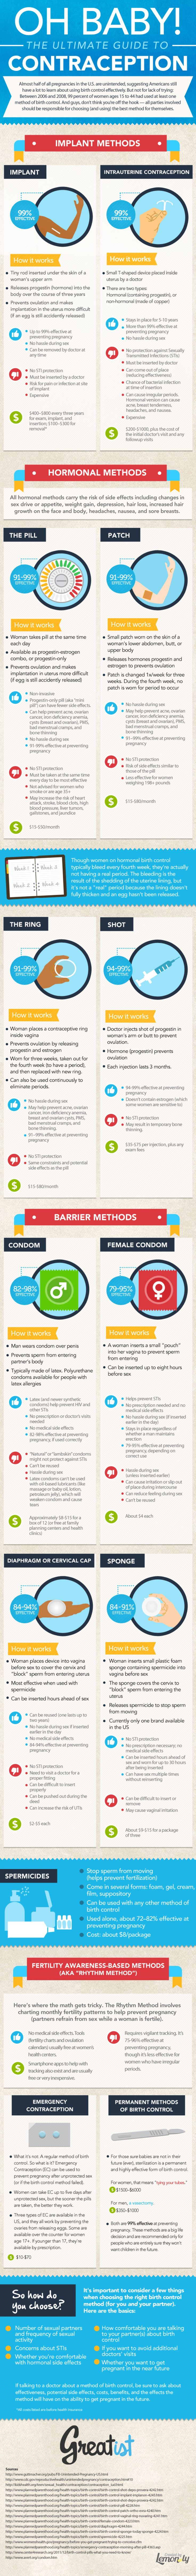 Some basic information on contraception options.